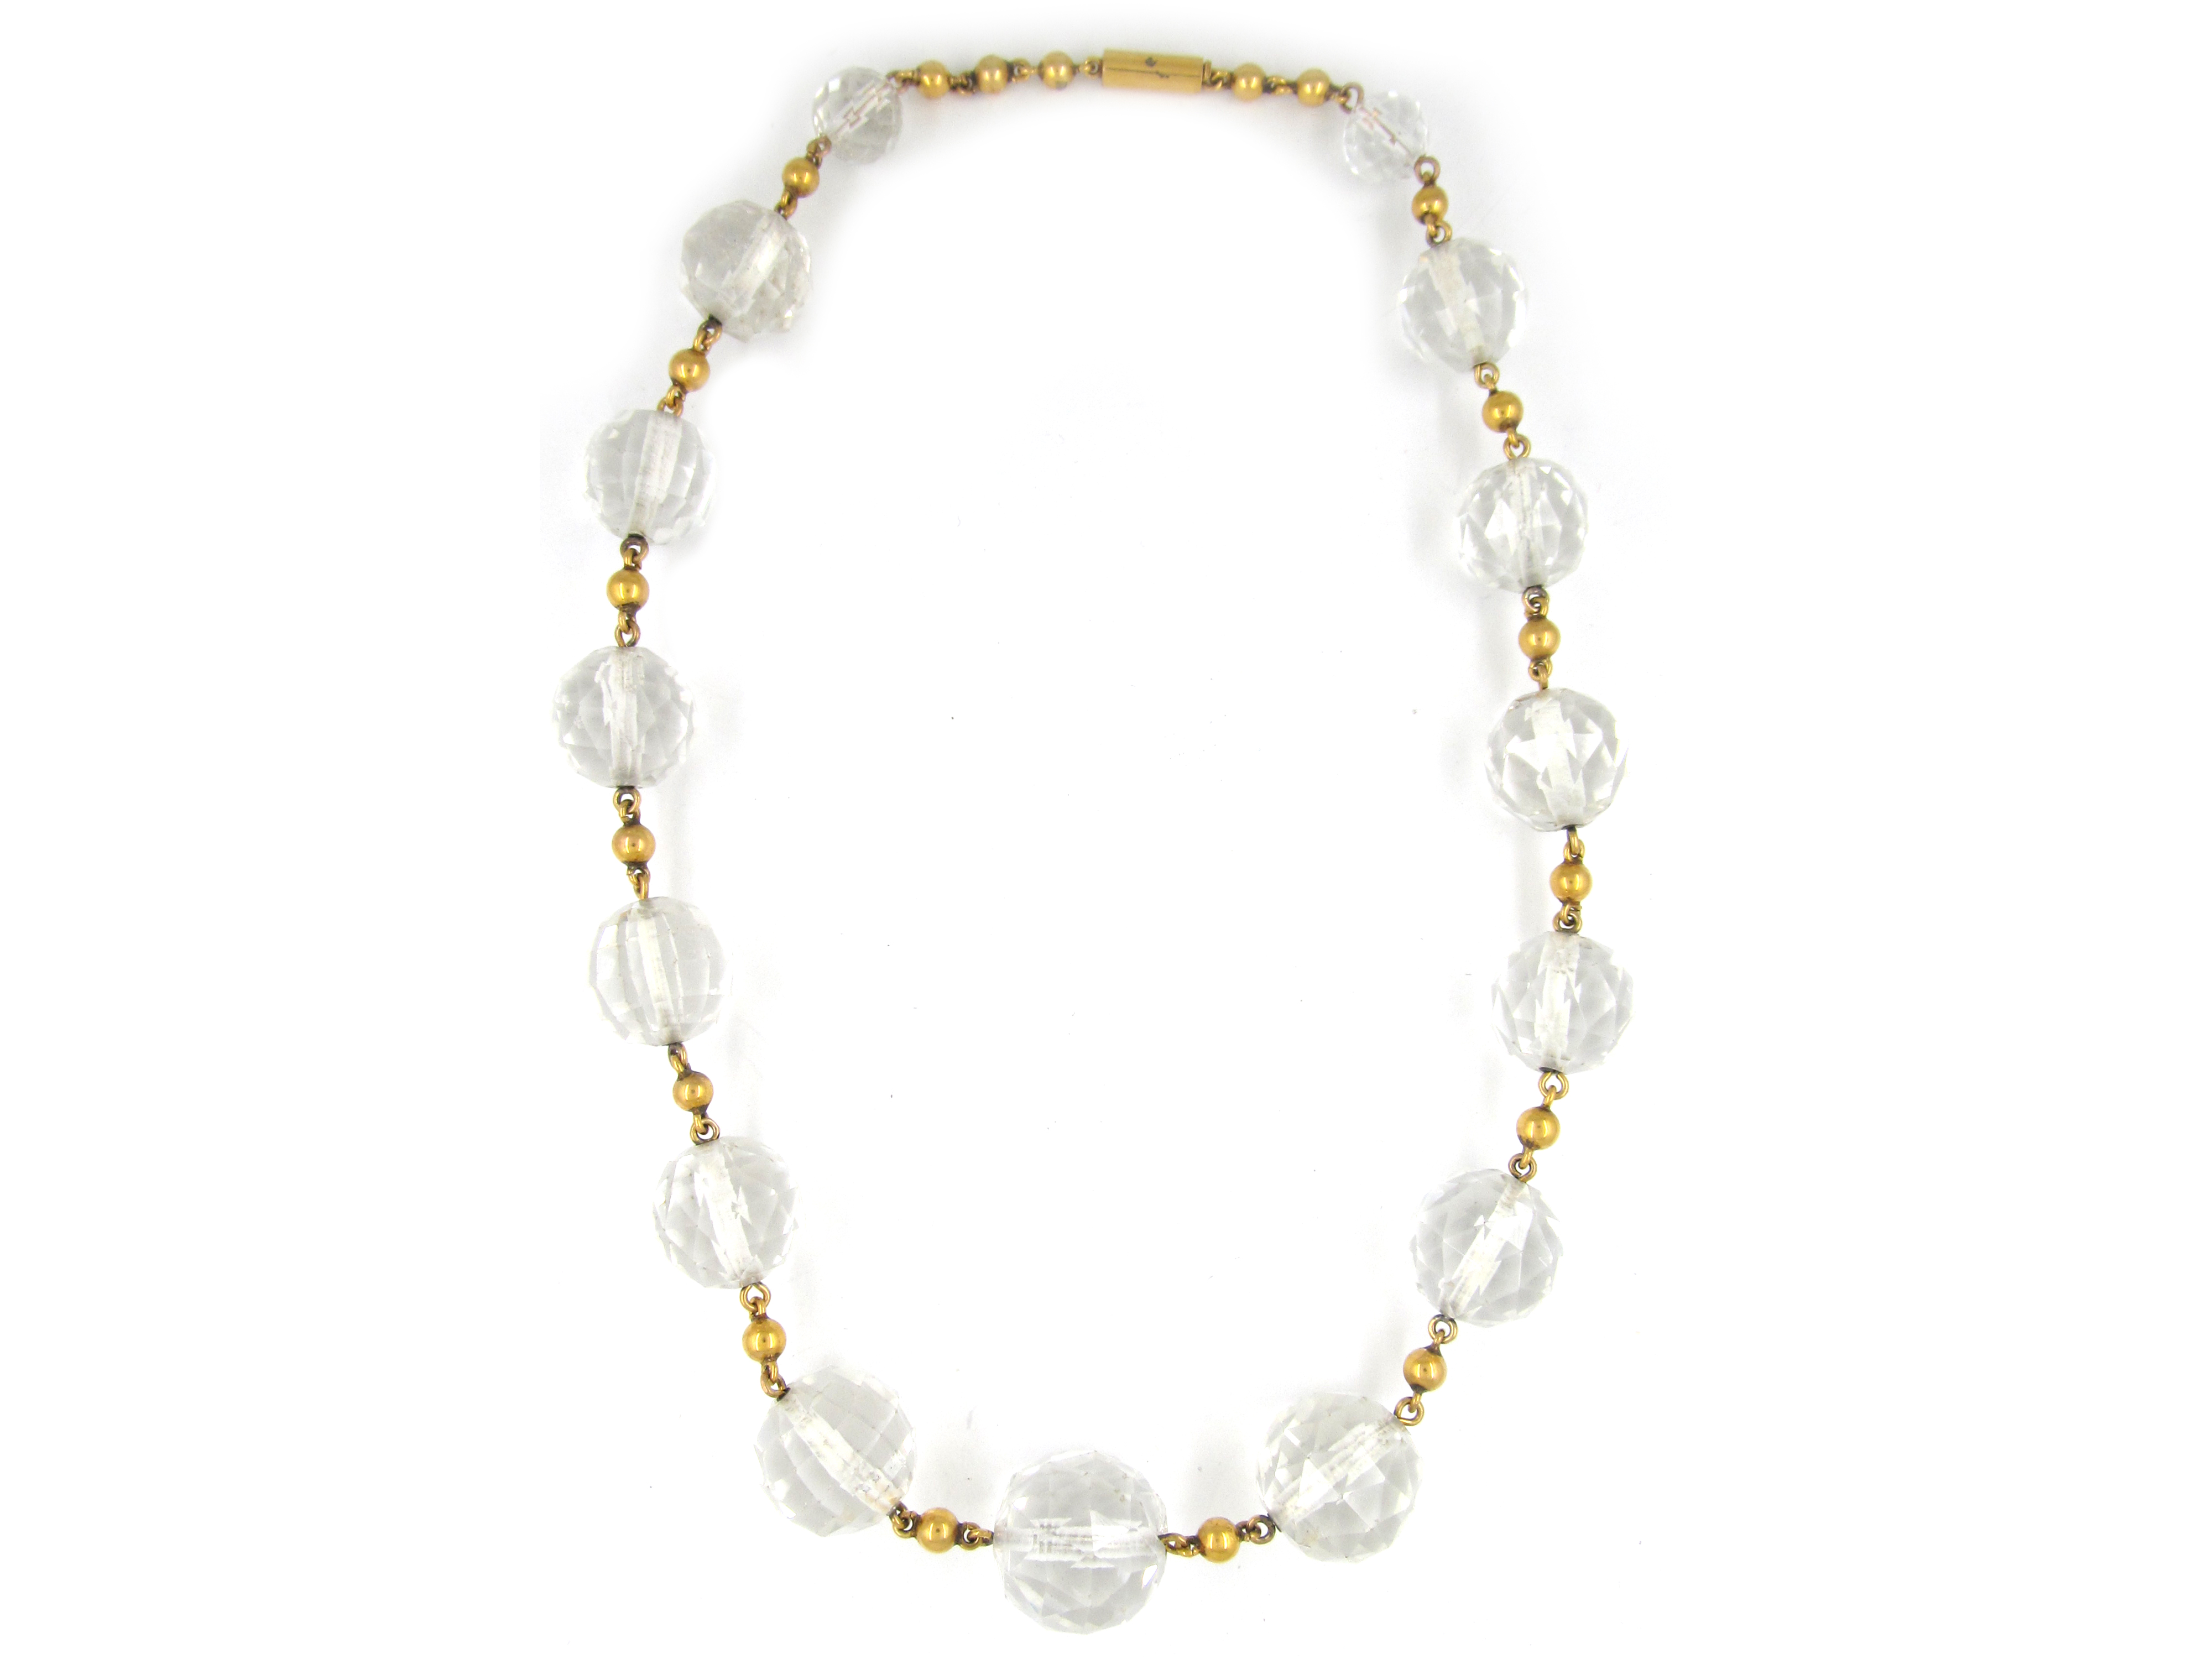 18ct Gold & Rock Crystal Necklace